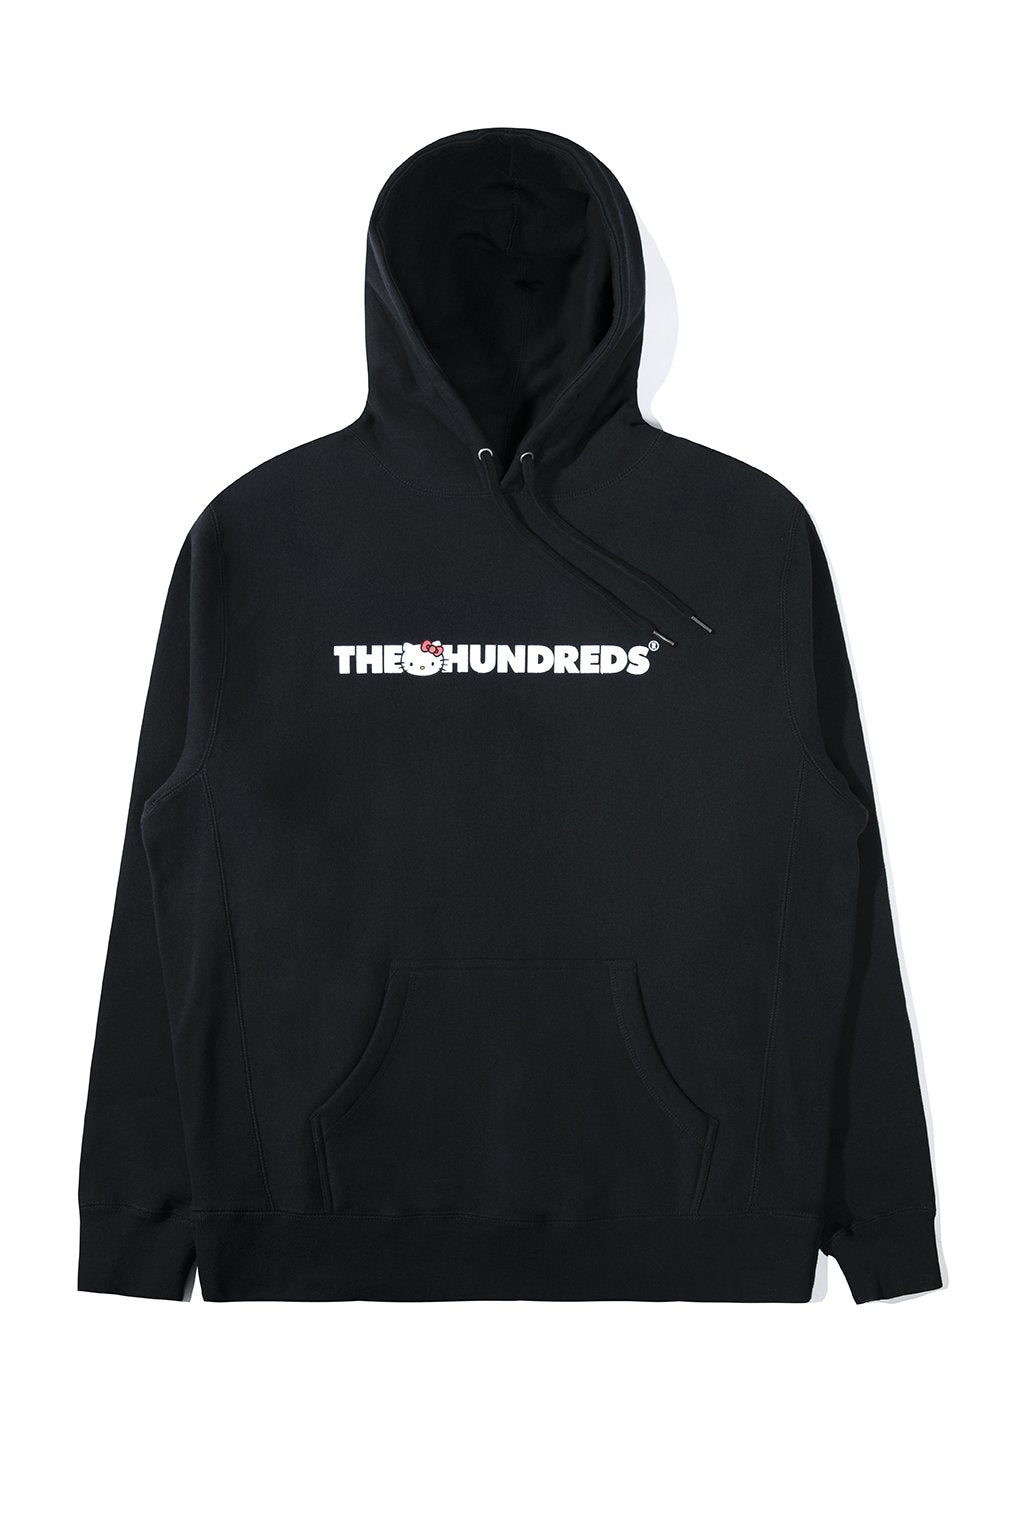 The Hundreds x Sanrio Crew Pullover in Black xld